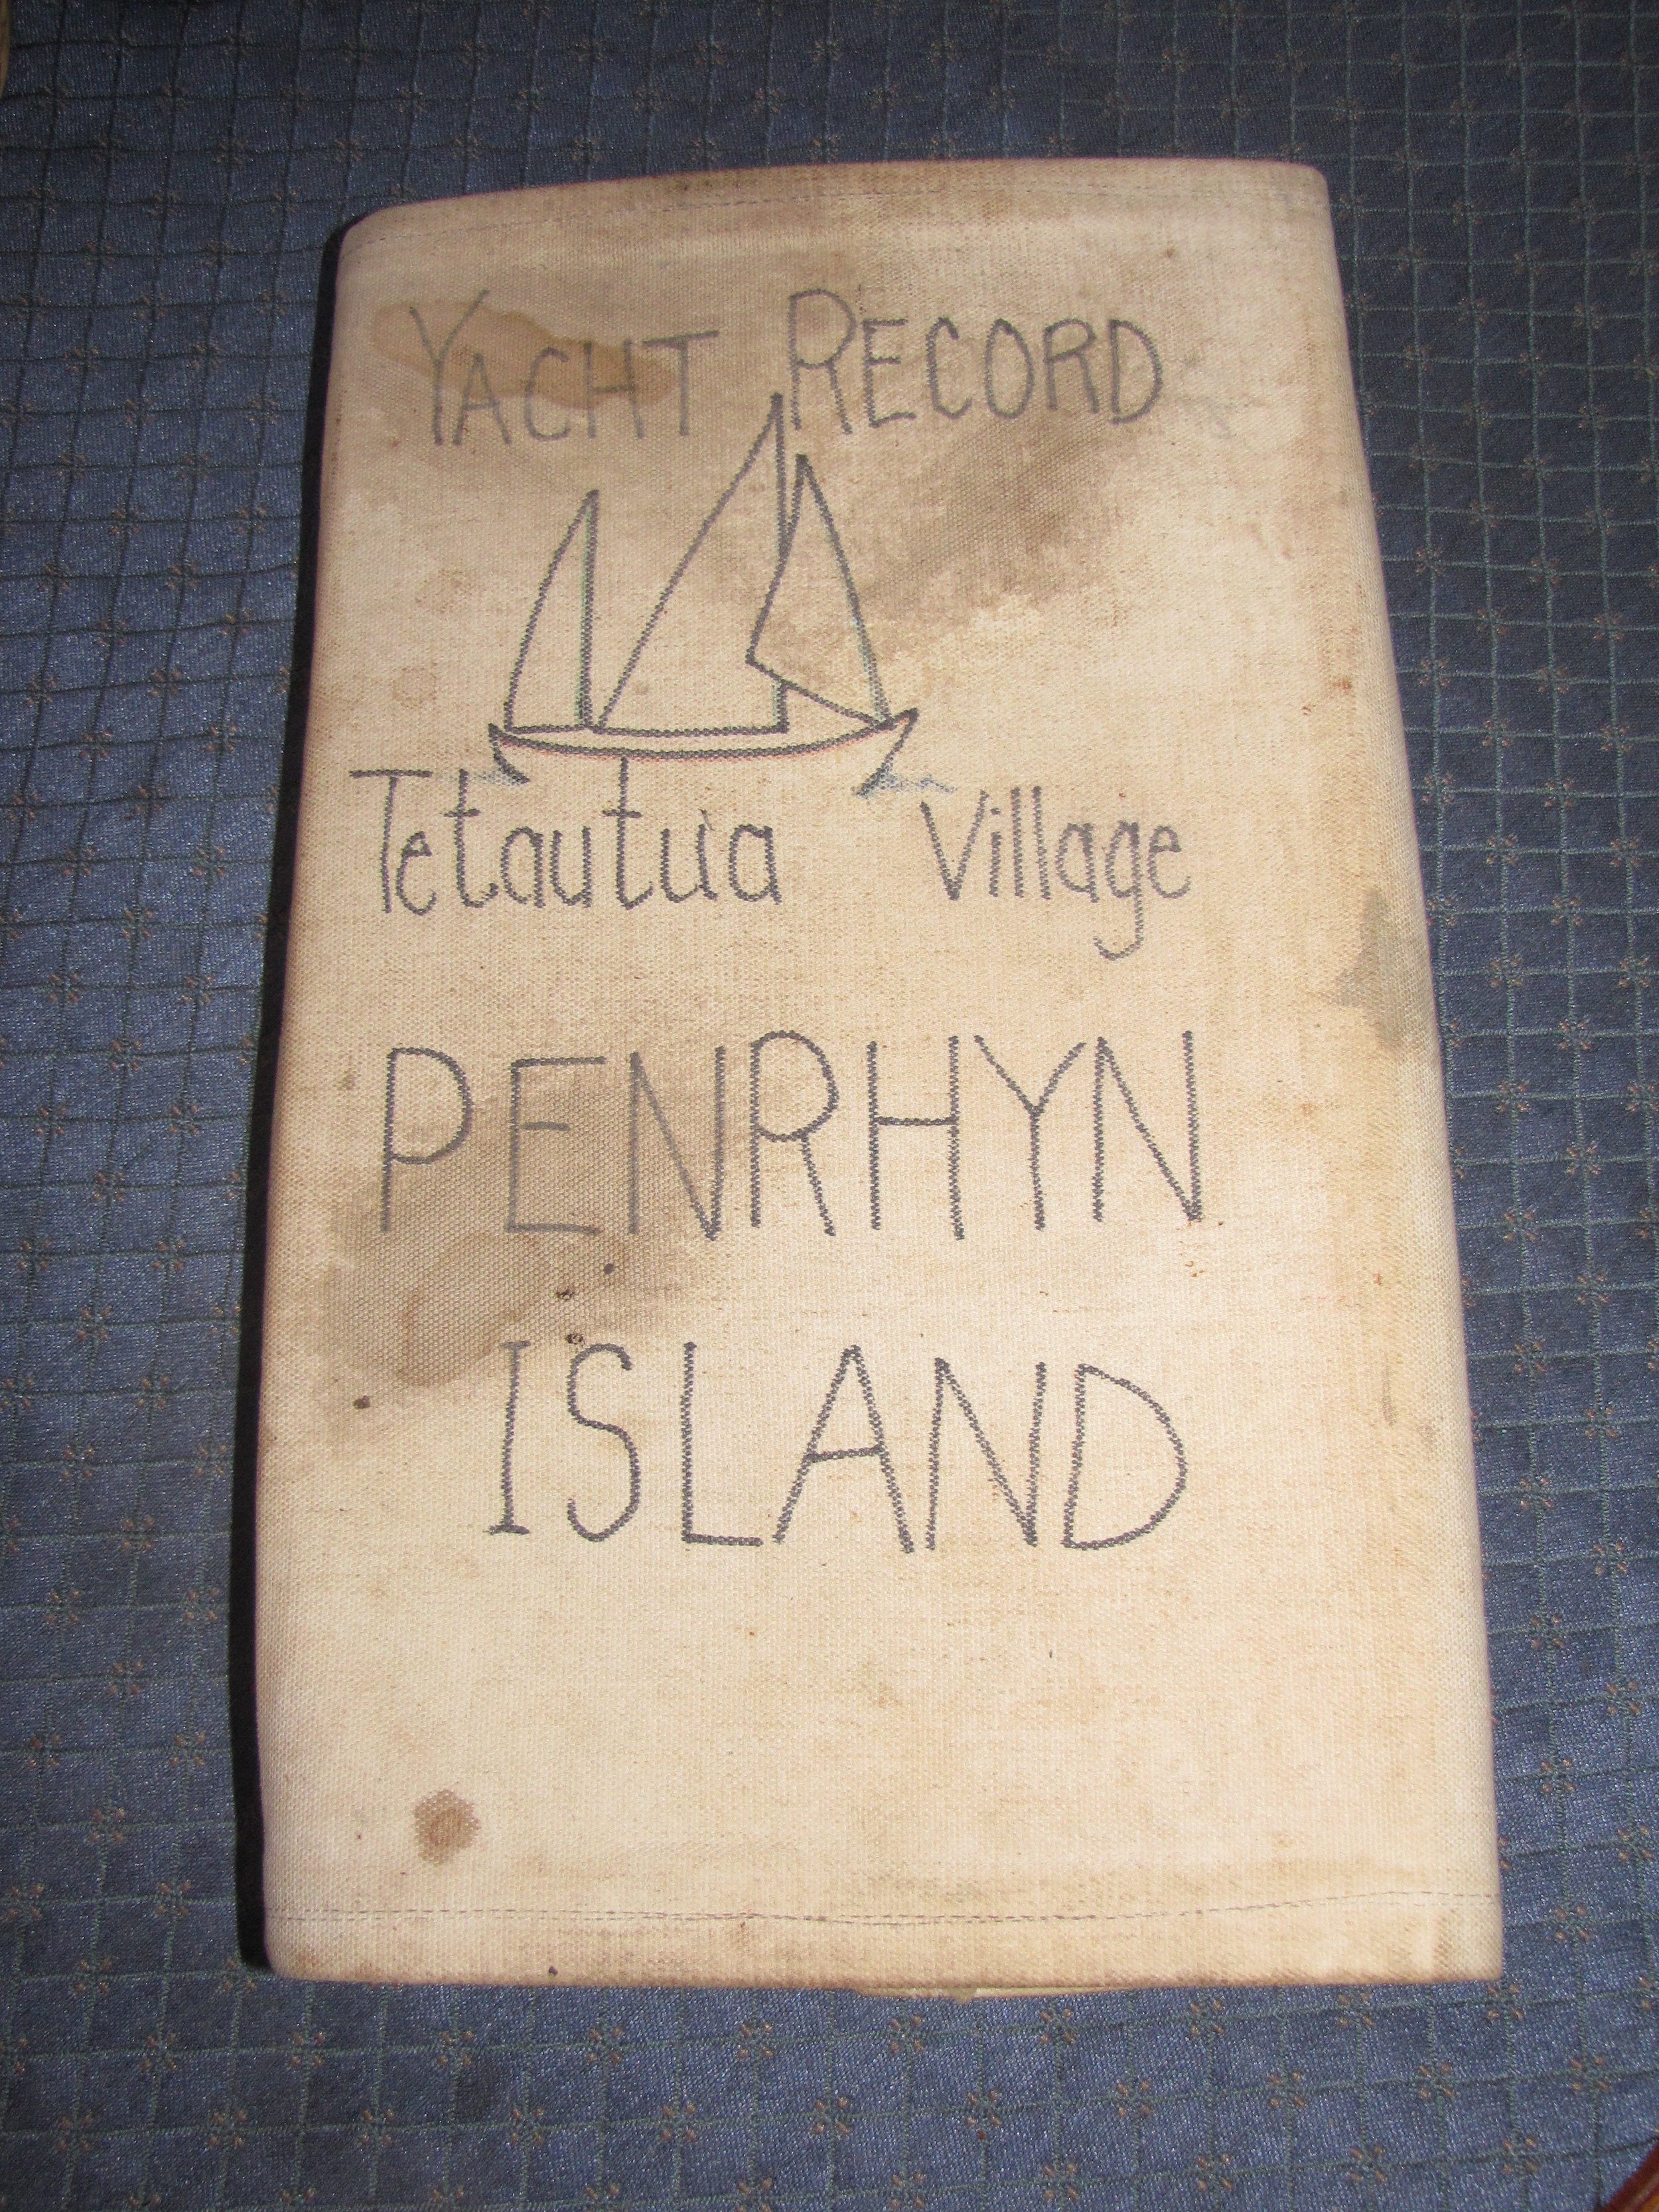 Yacht Record left by John Neal in 1987.